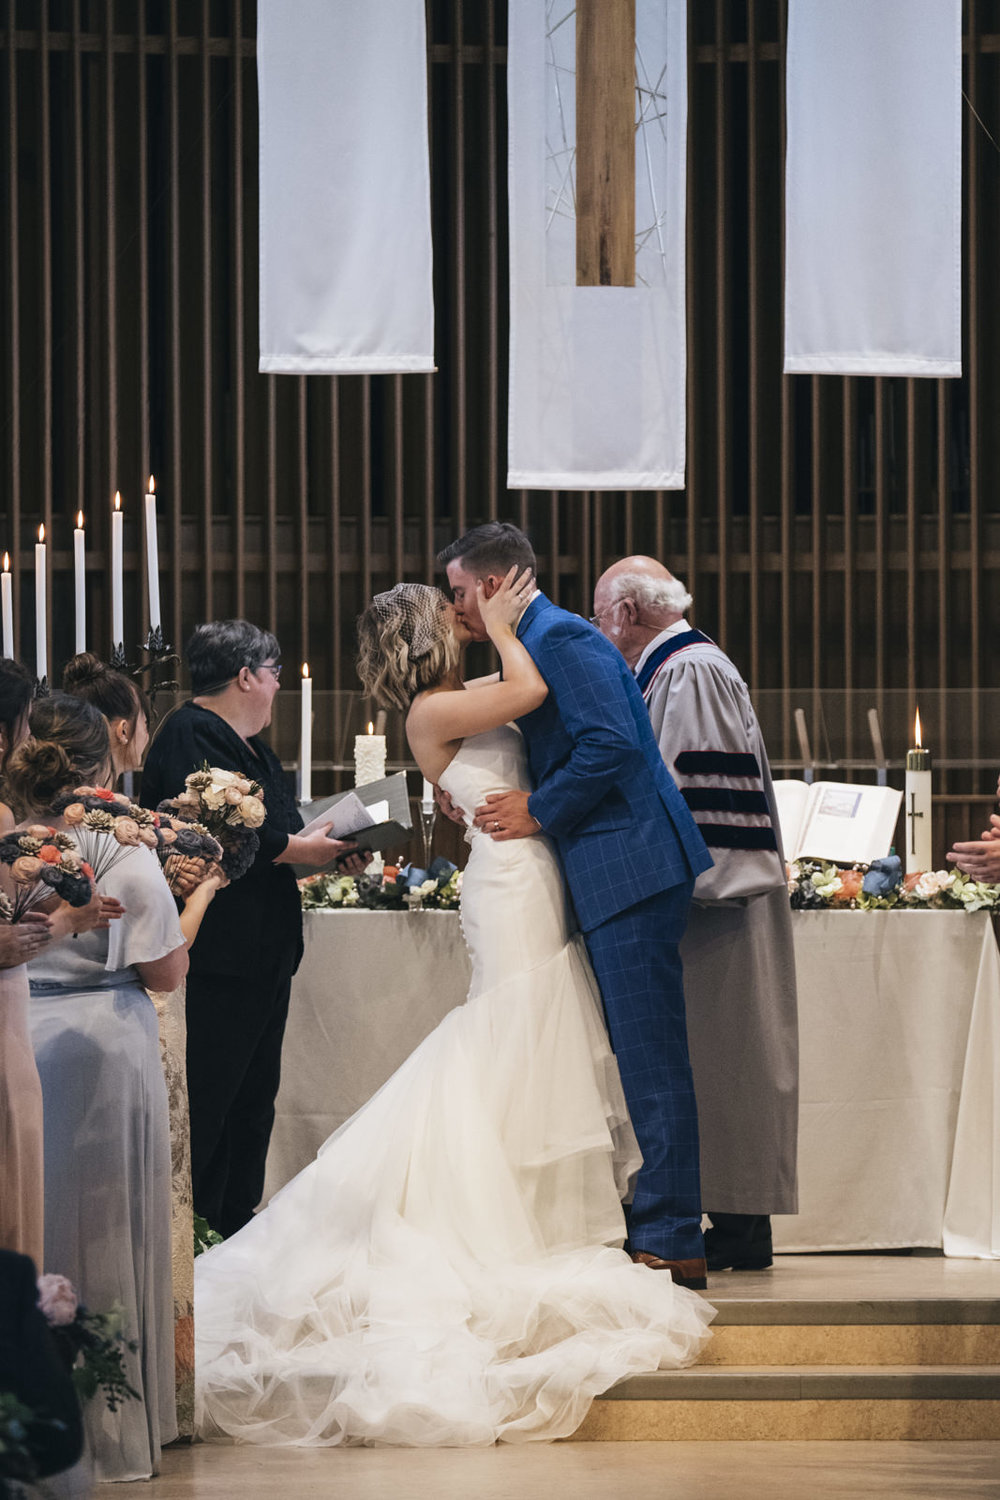 First kiss between bride and groom.